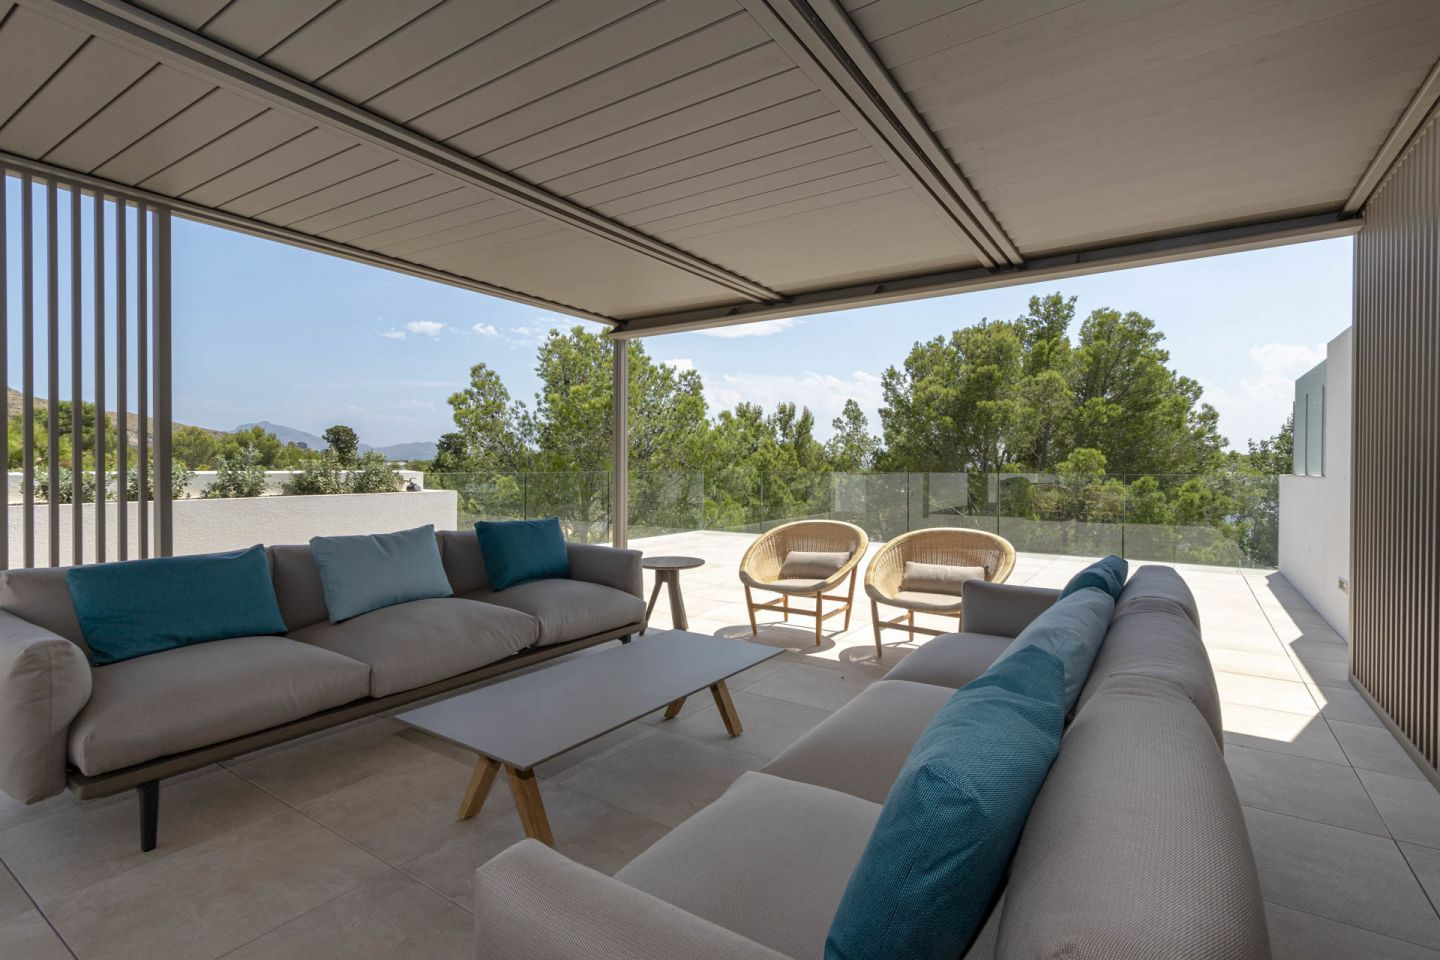 4 Bed Penthouse for sale in PUERTO POLLENSA 1